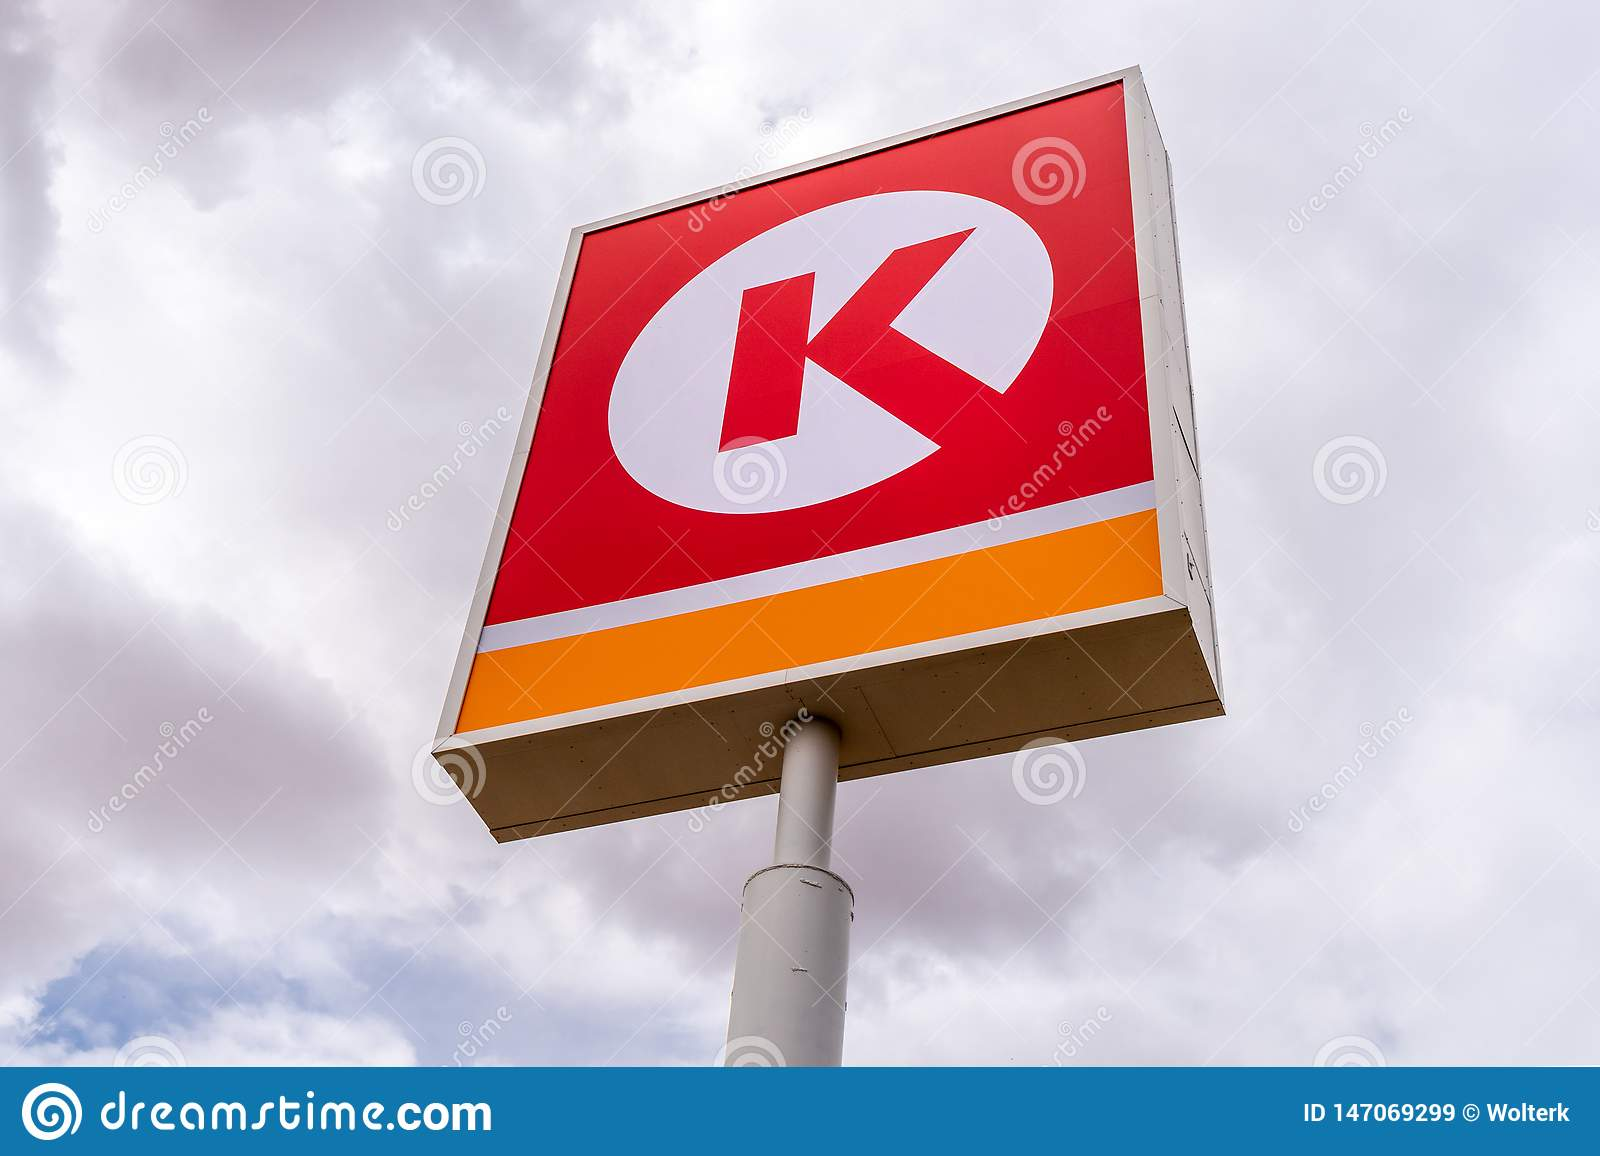 Circle K Retail Gas Station Exterior Sign Editorial Stock Image Image Of Filling Station 147069299